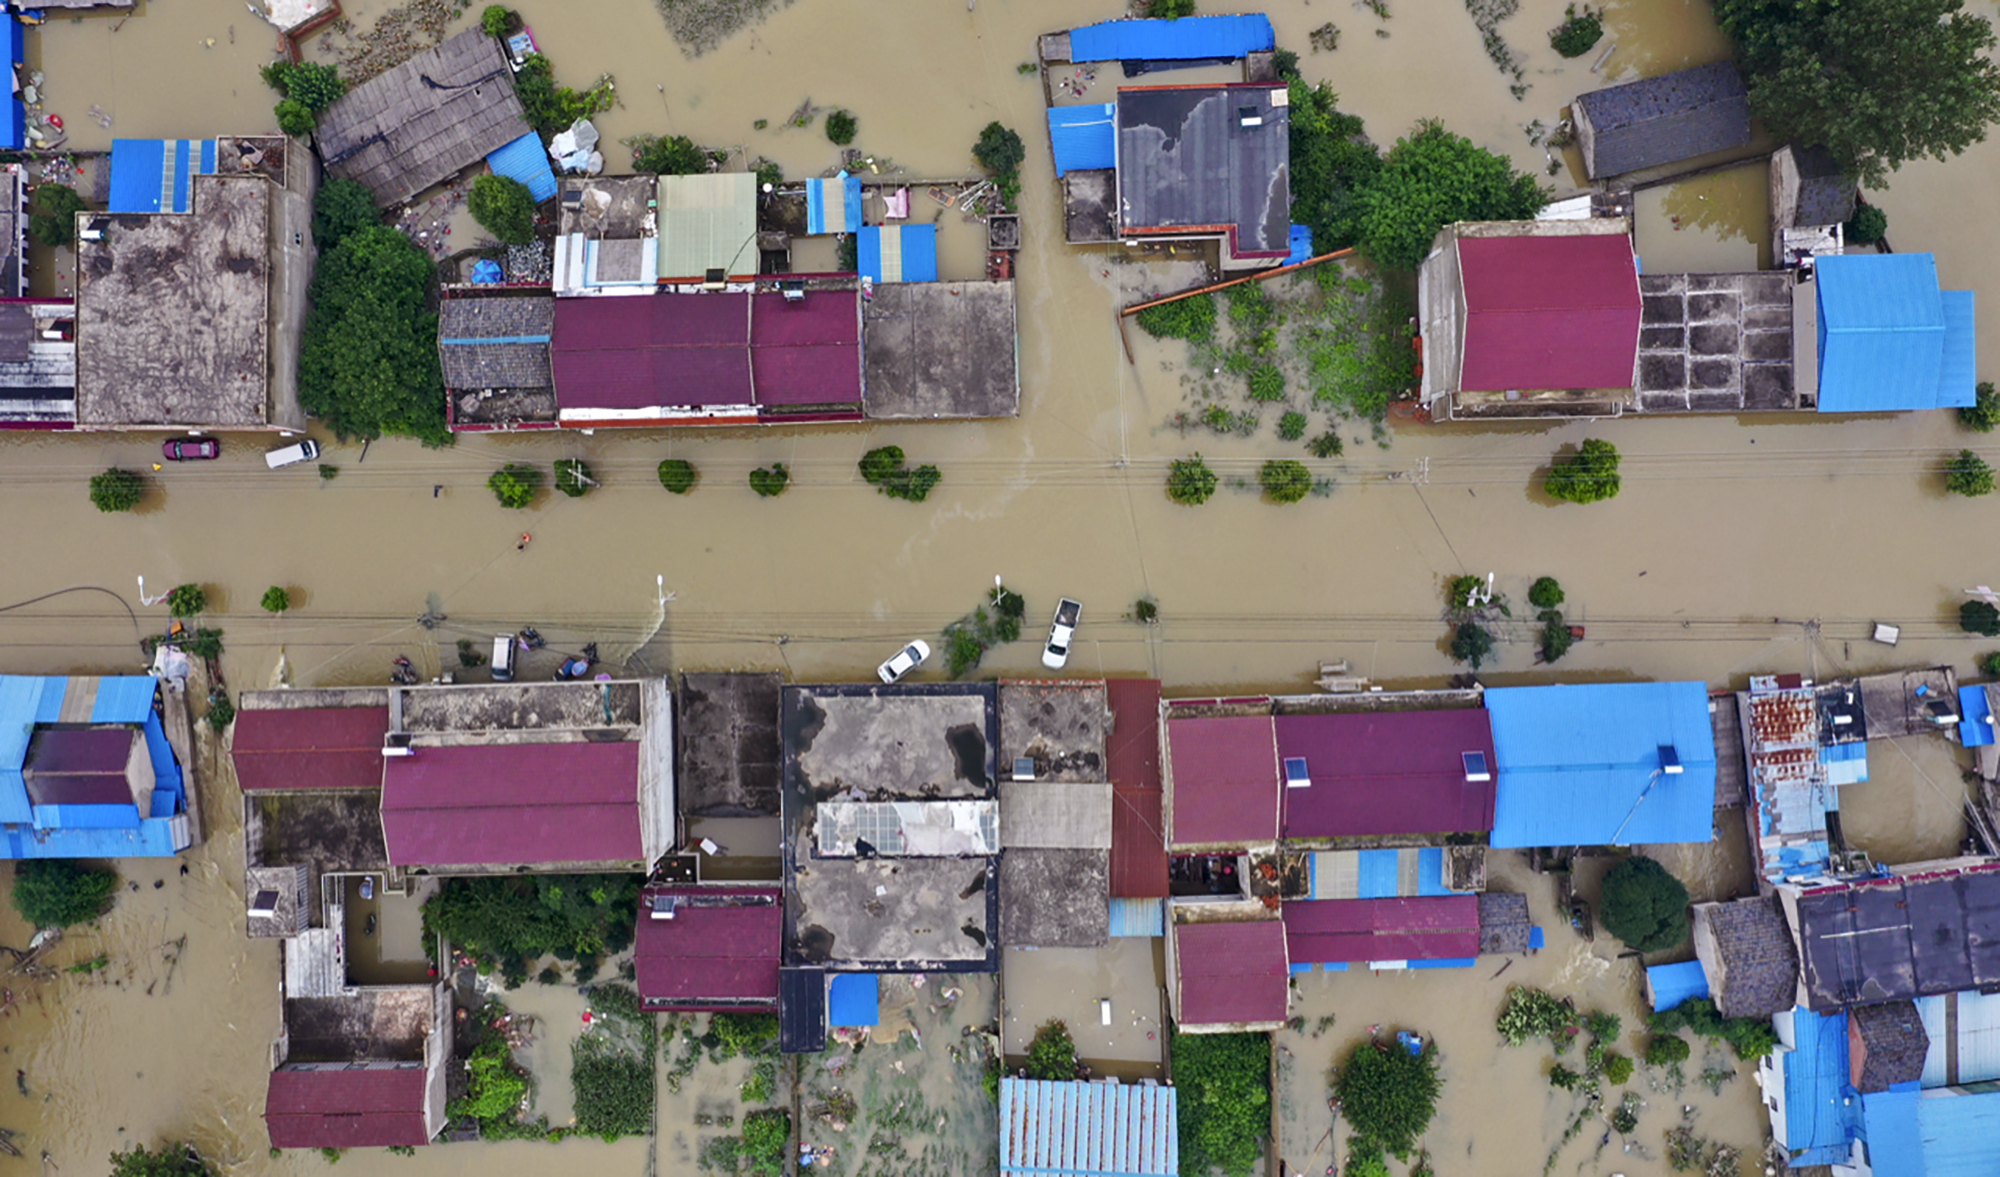 In this photo released by Xinhua News Agency, an aerial photo shows the extent of flooding in Guzhen Town of Lu'an City in eastern China's Anhui Province on July 20, 2020.